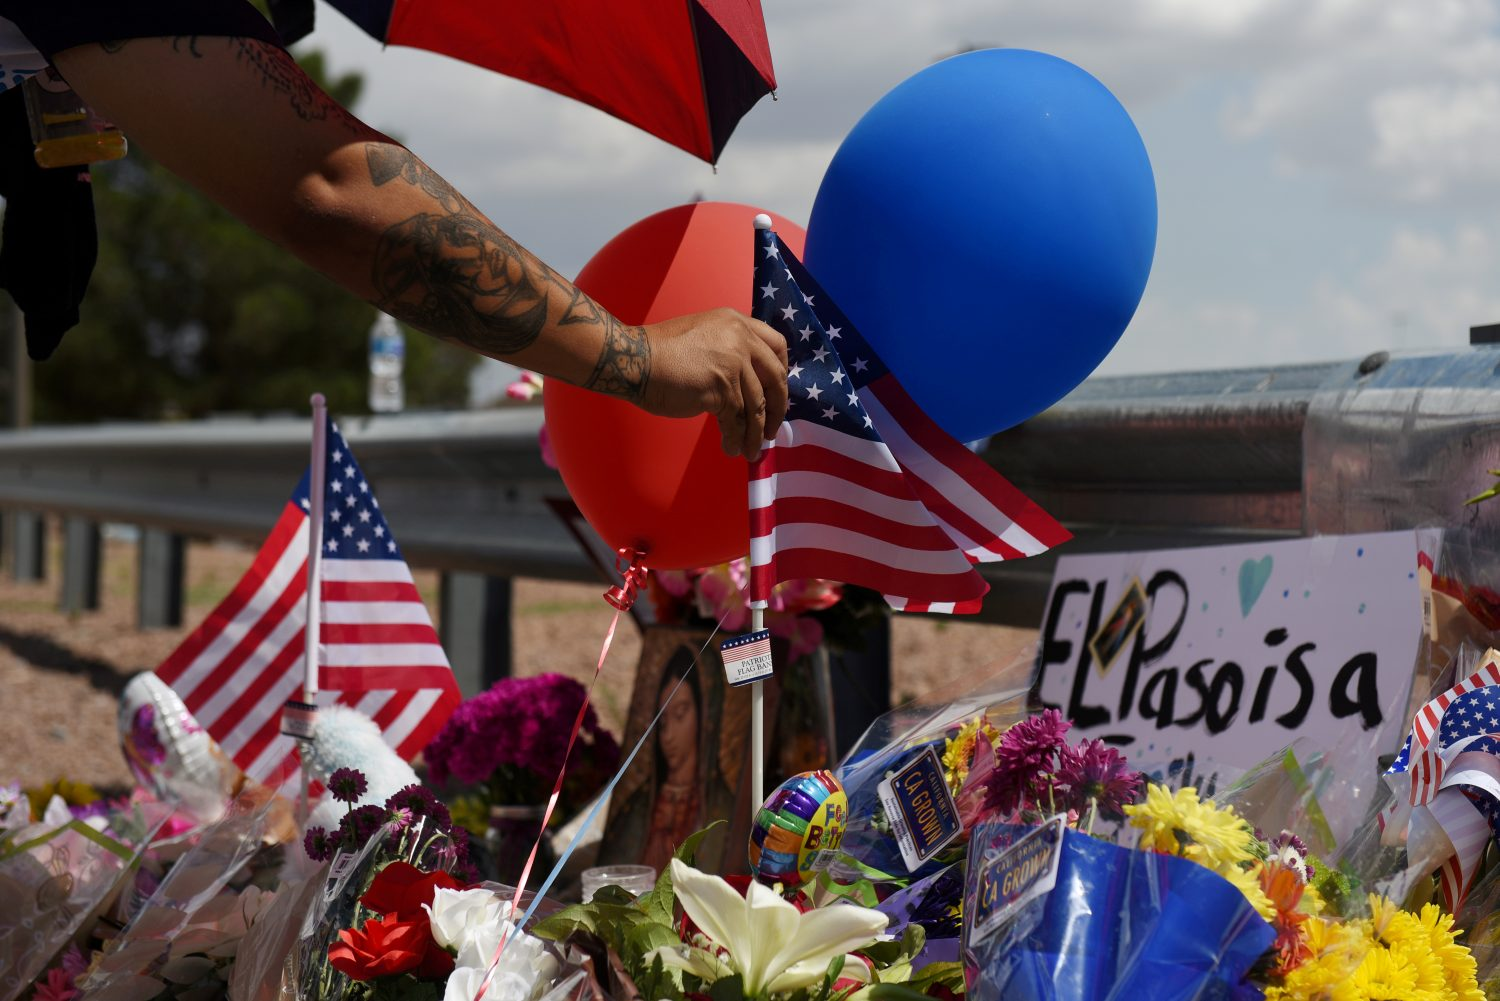 FILE PHOTO: A man places an American flag in the pile of flowers that has gathered a day after a mass shooting at a Walmart store in El Paso, Texas, U.S. August 4, 2019. REUTERS/Callaghan O'Hare/File Photo